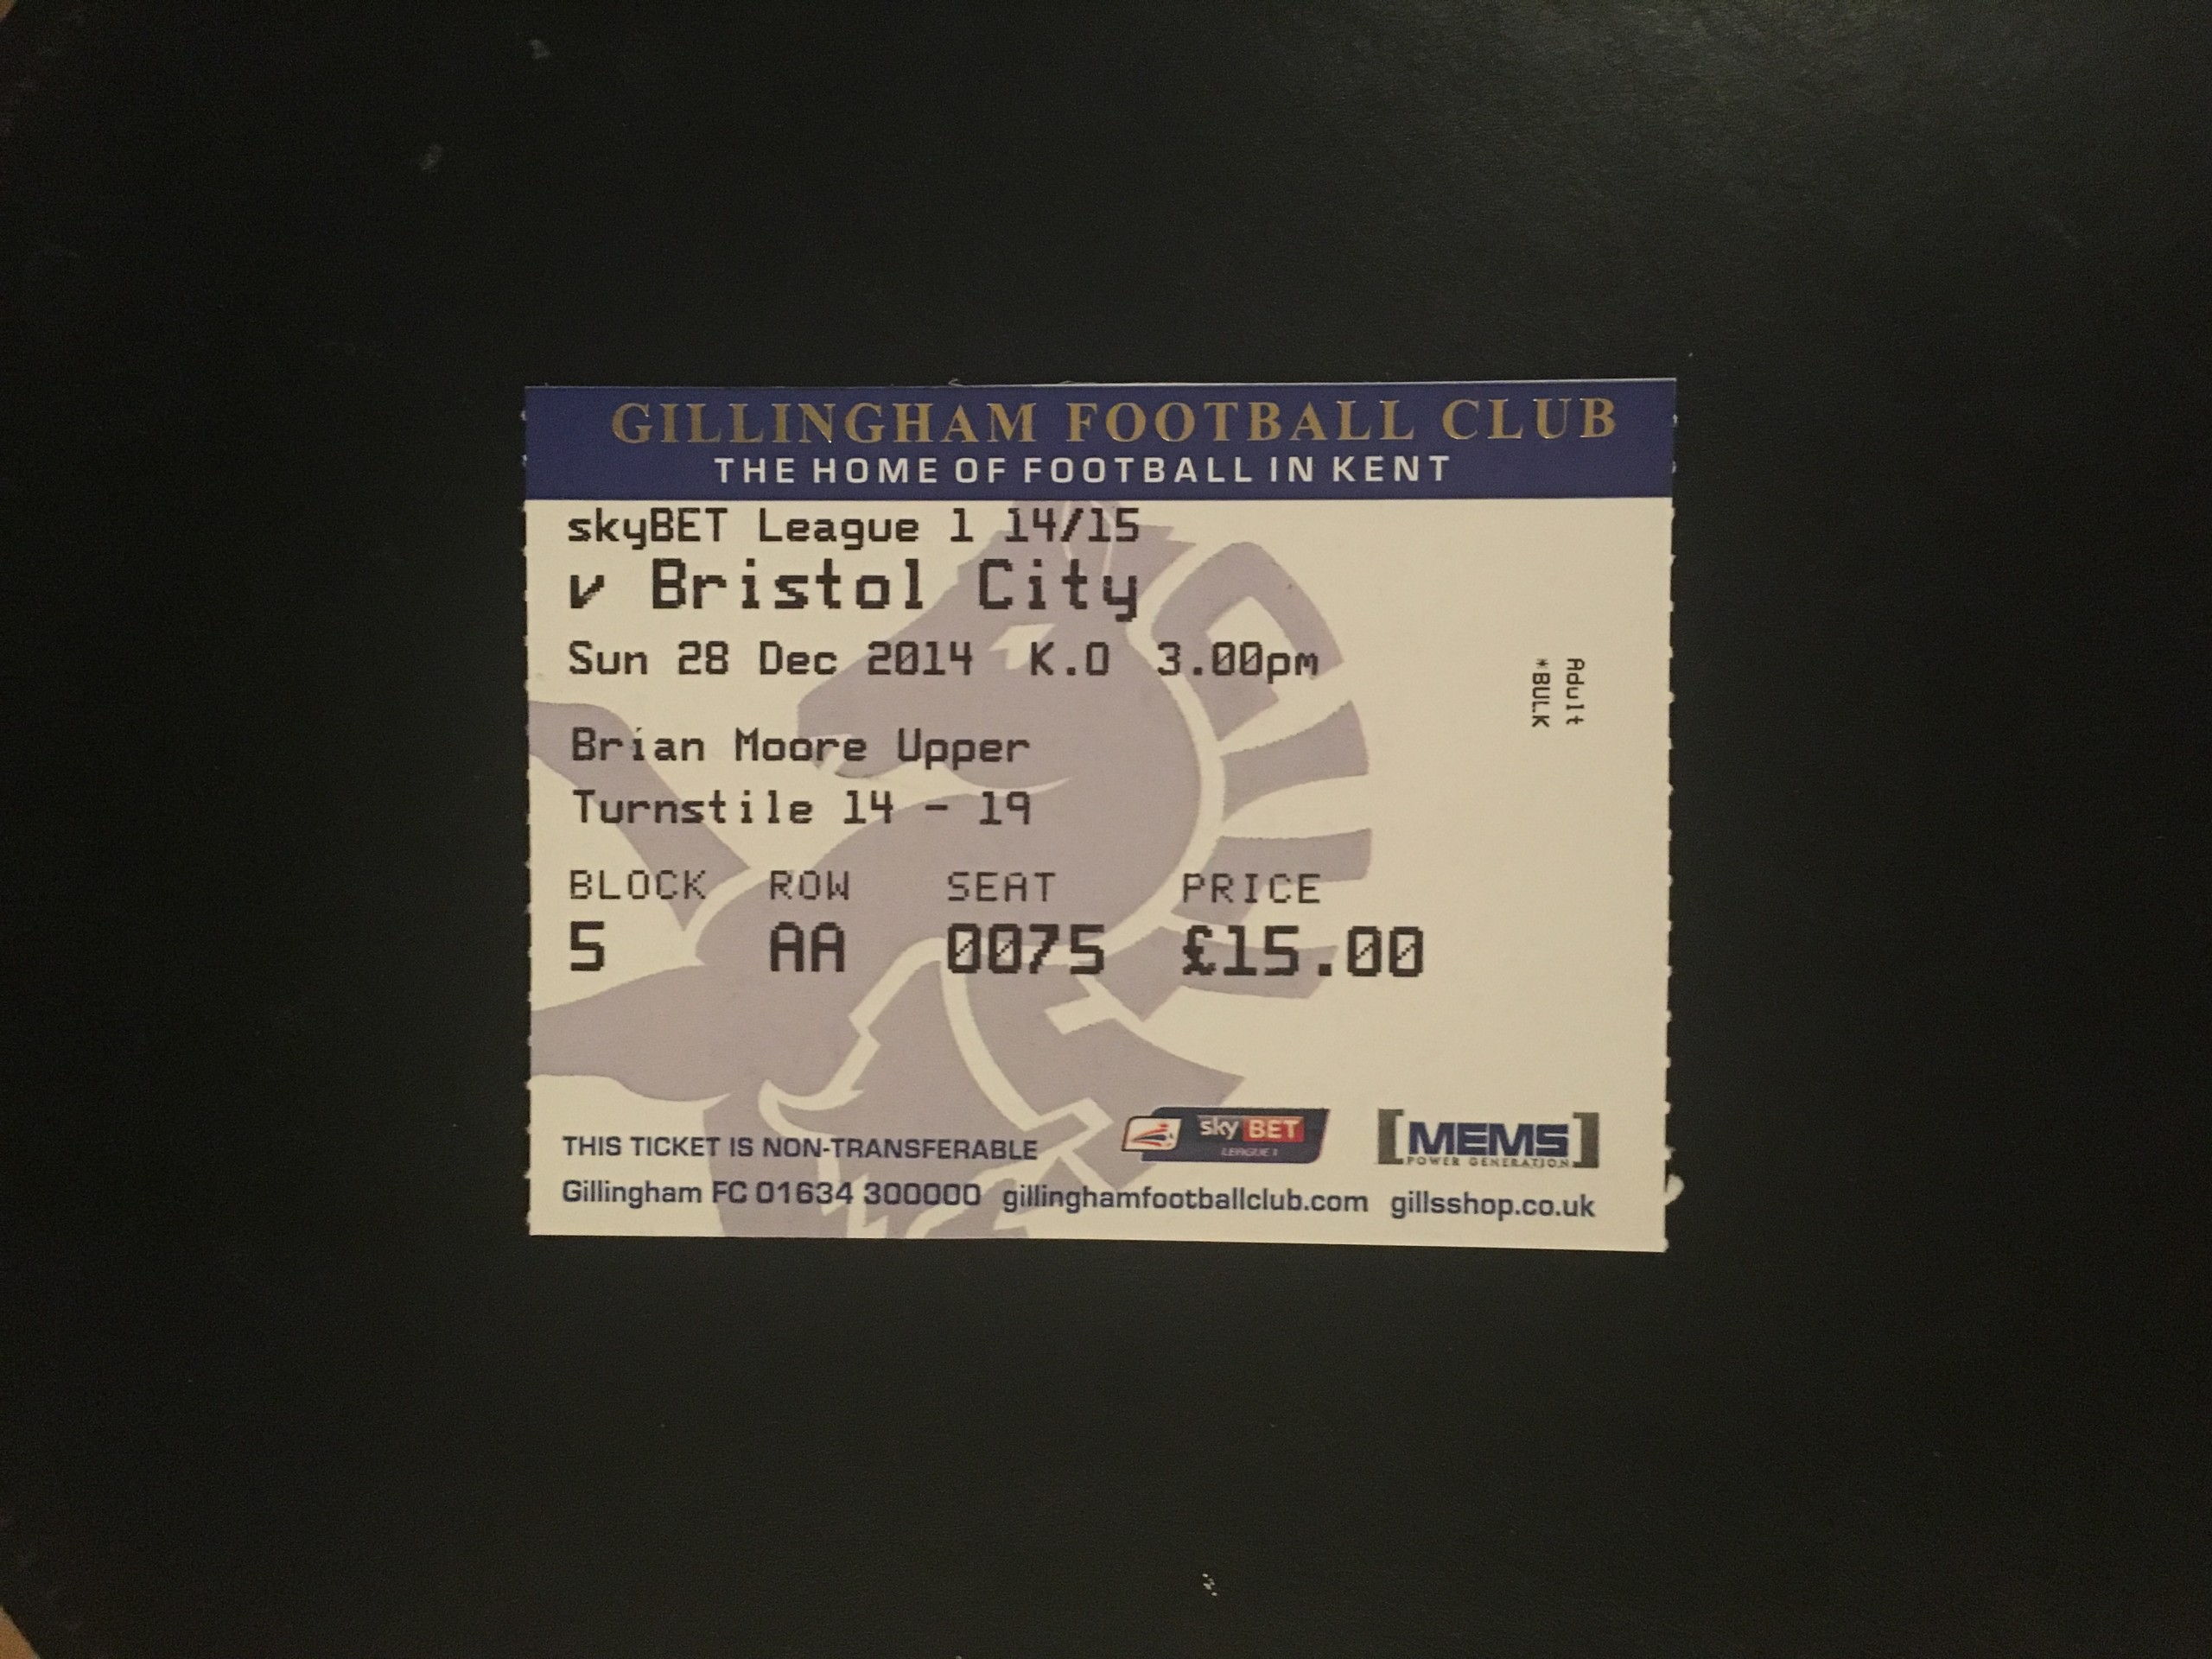 Gillingham v Bristol City 28-12-2014 Ticket